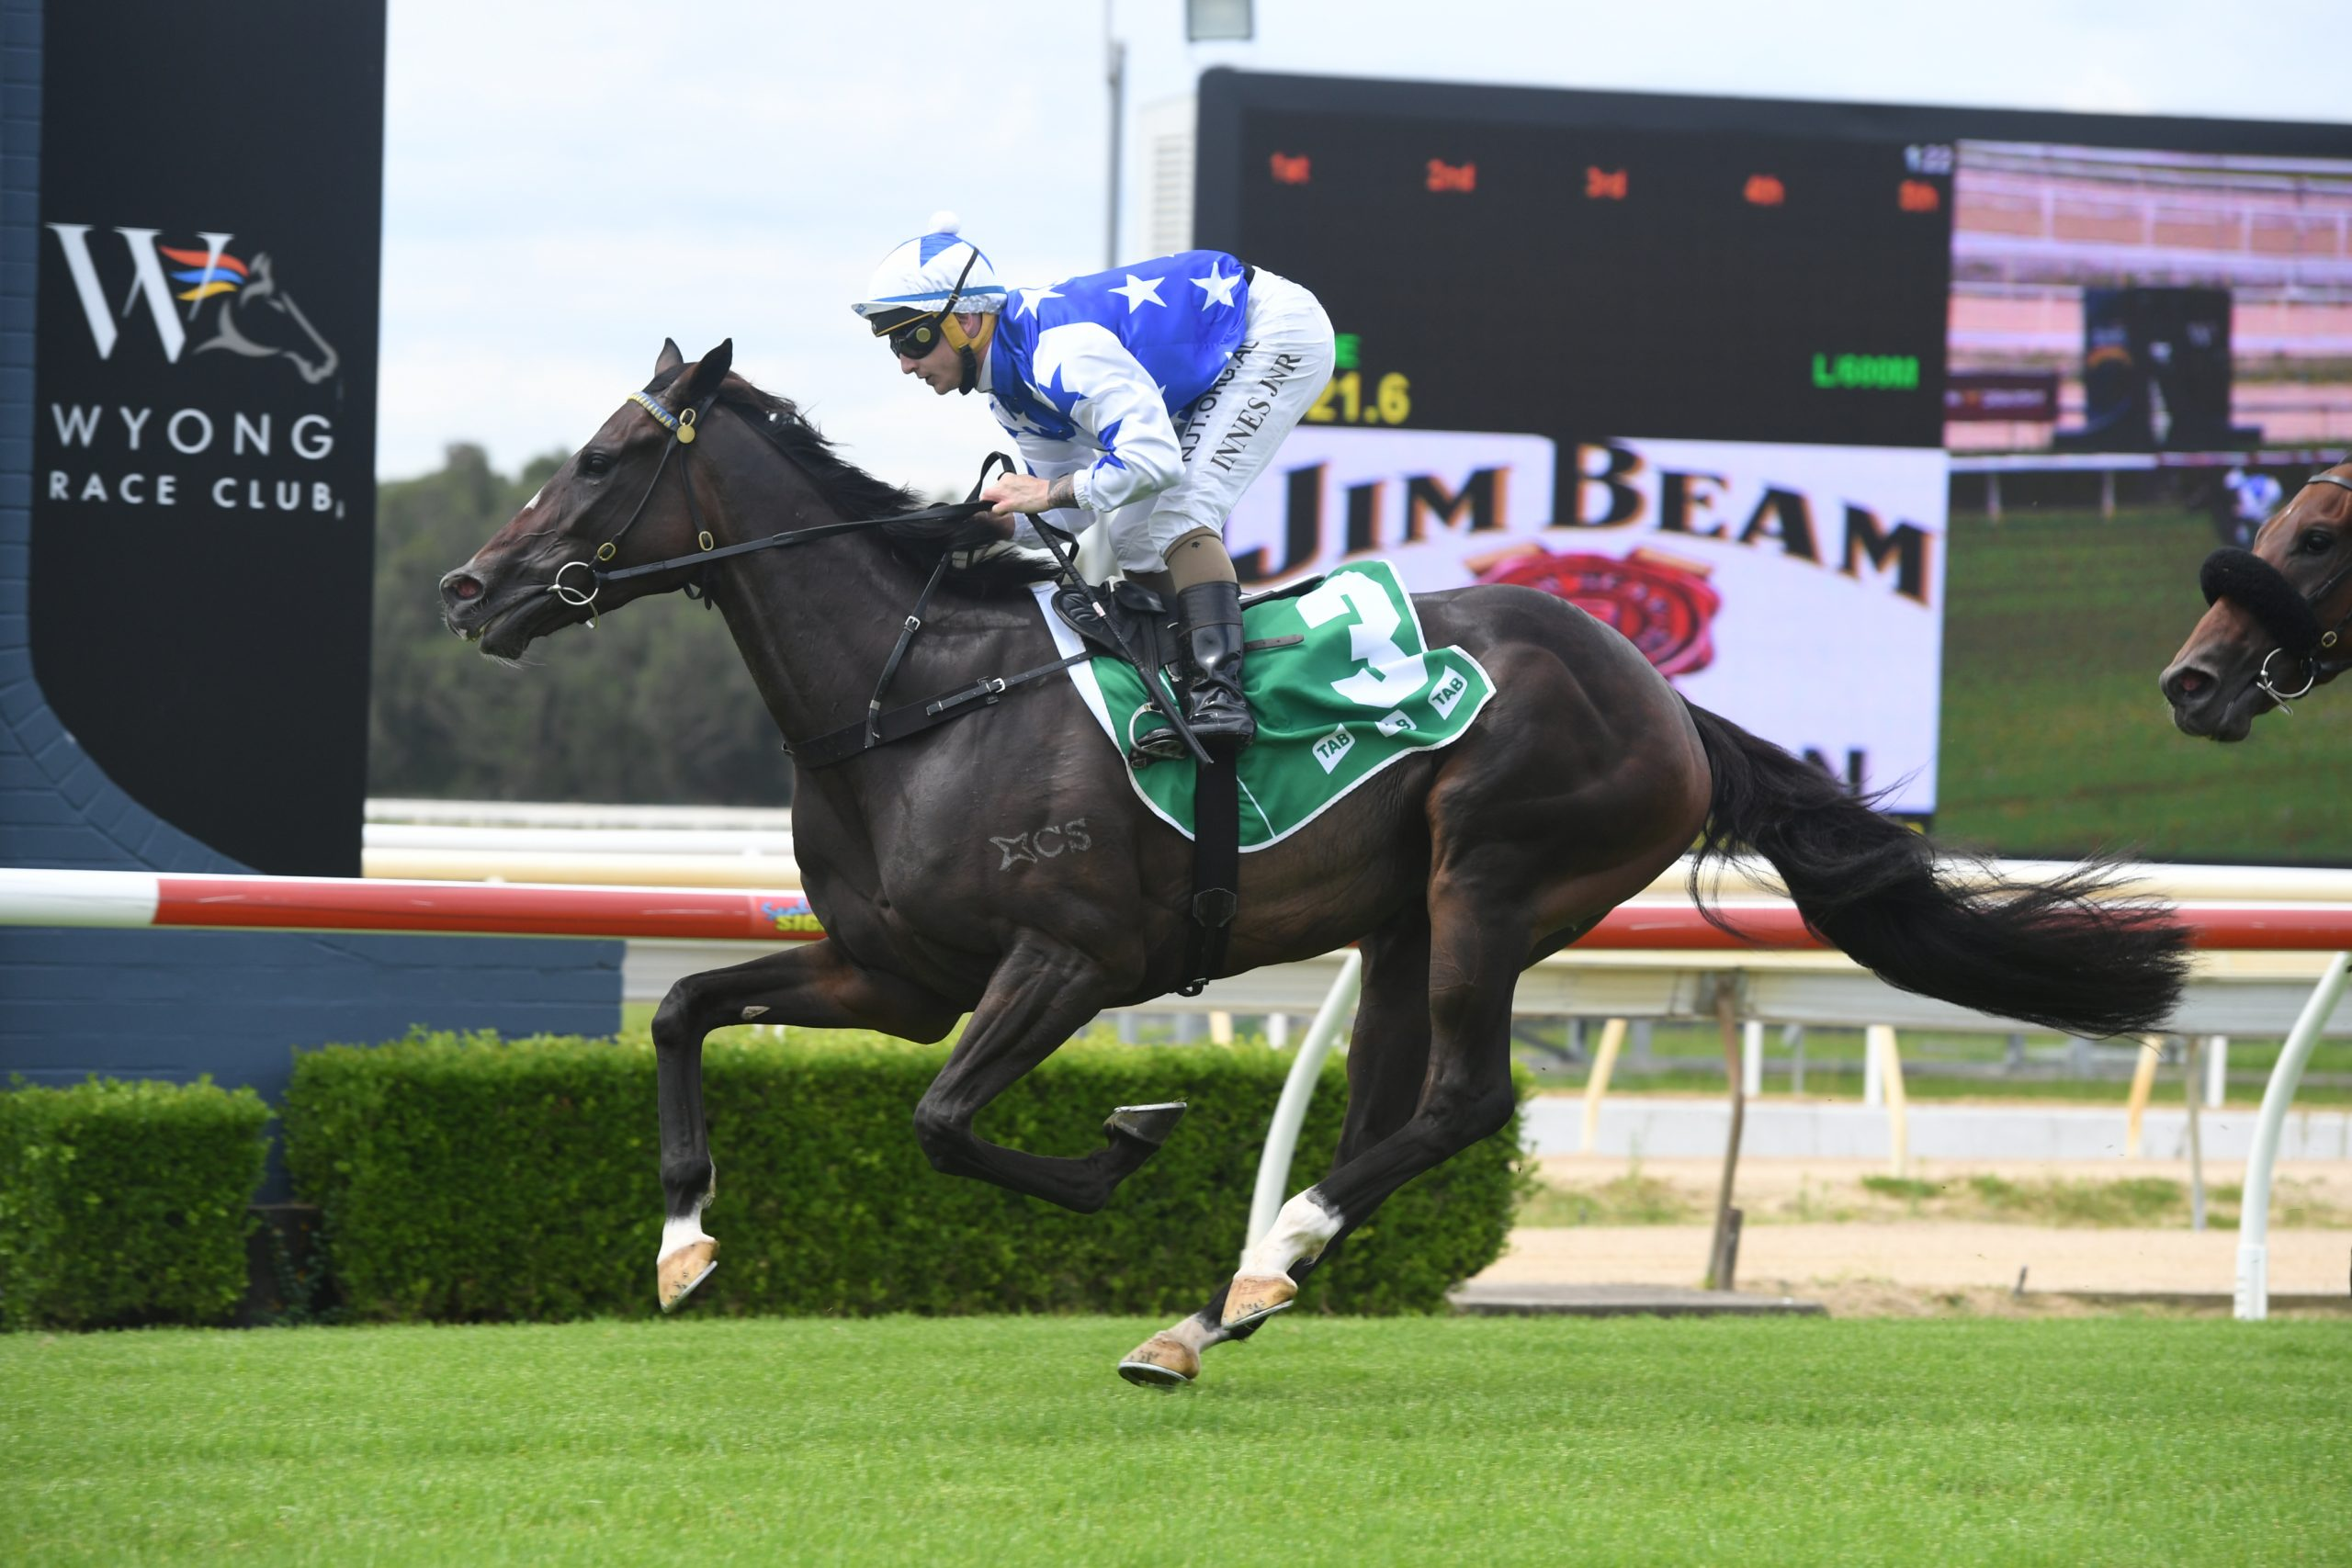 RYAN AND ALEXIOU DOMINATE WYONG 8